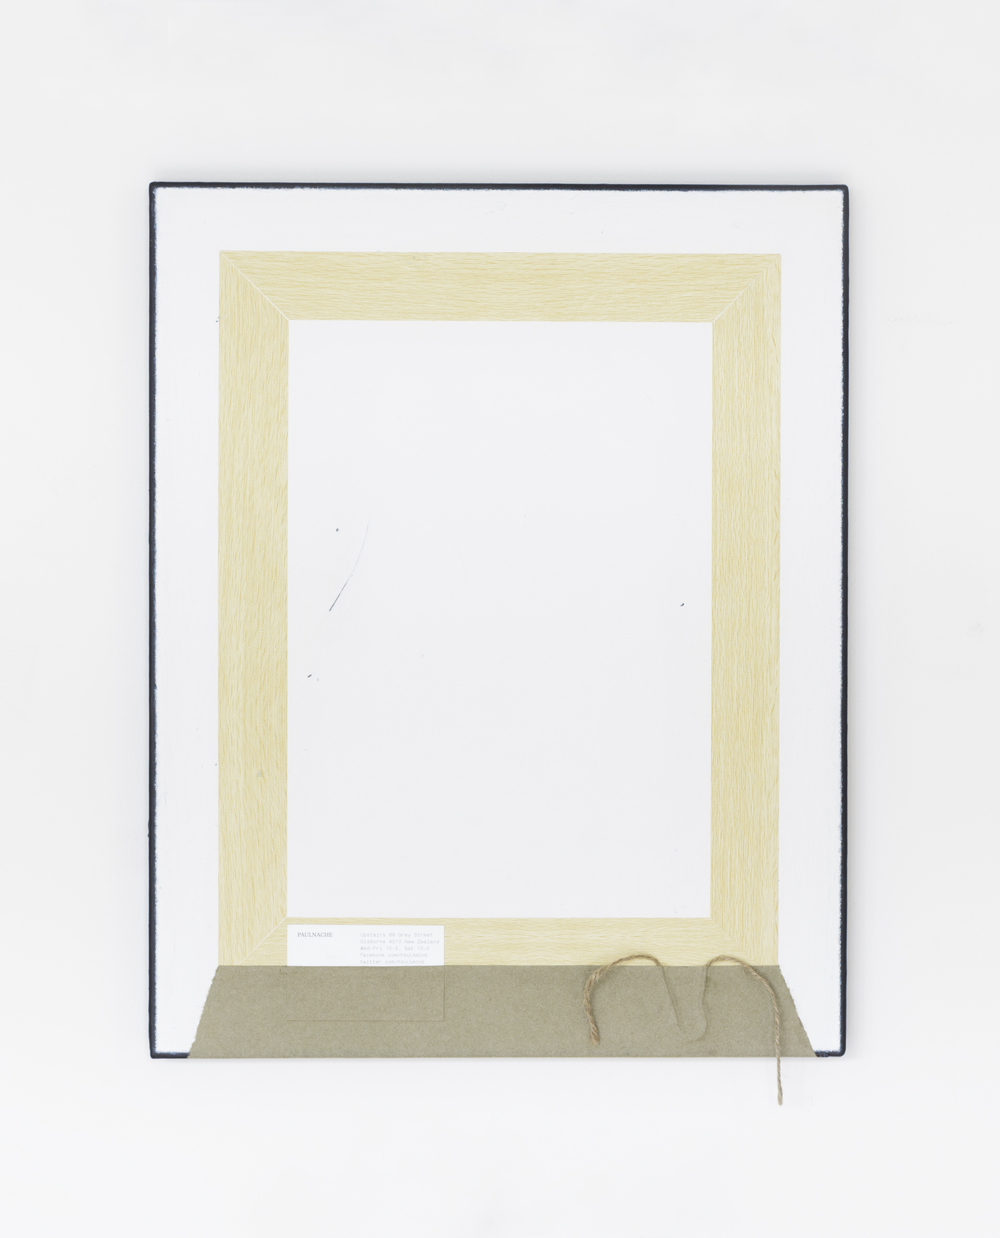 Painting No.5 2015 Awagami paper, vinyl wood adhesive, business card, brown string, paint, linen, stretcher frame 40 x 50 cm $5000 USD